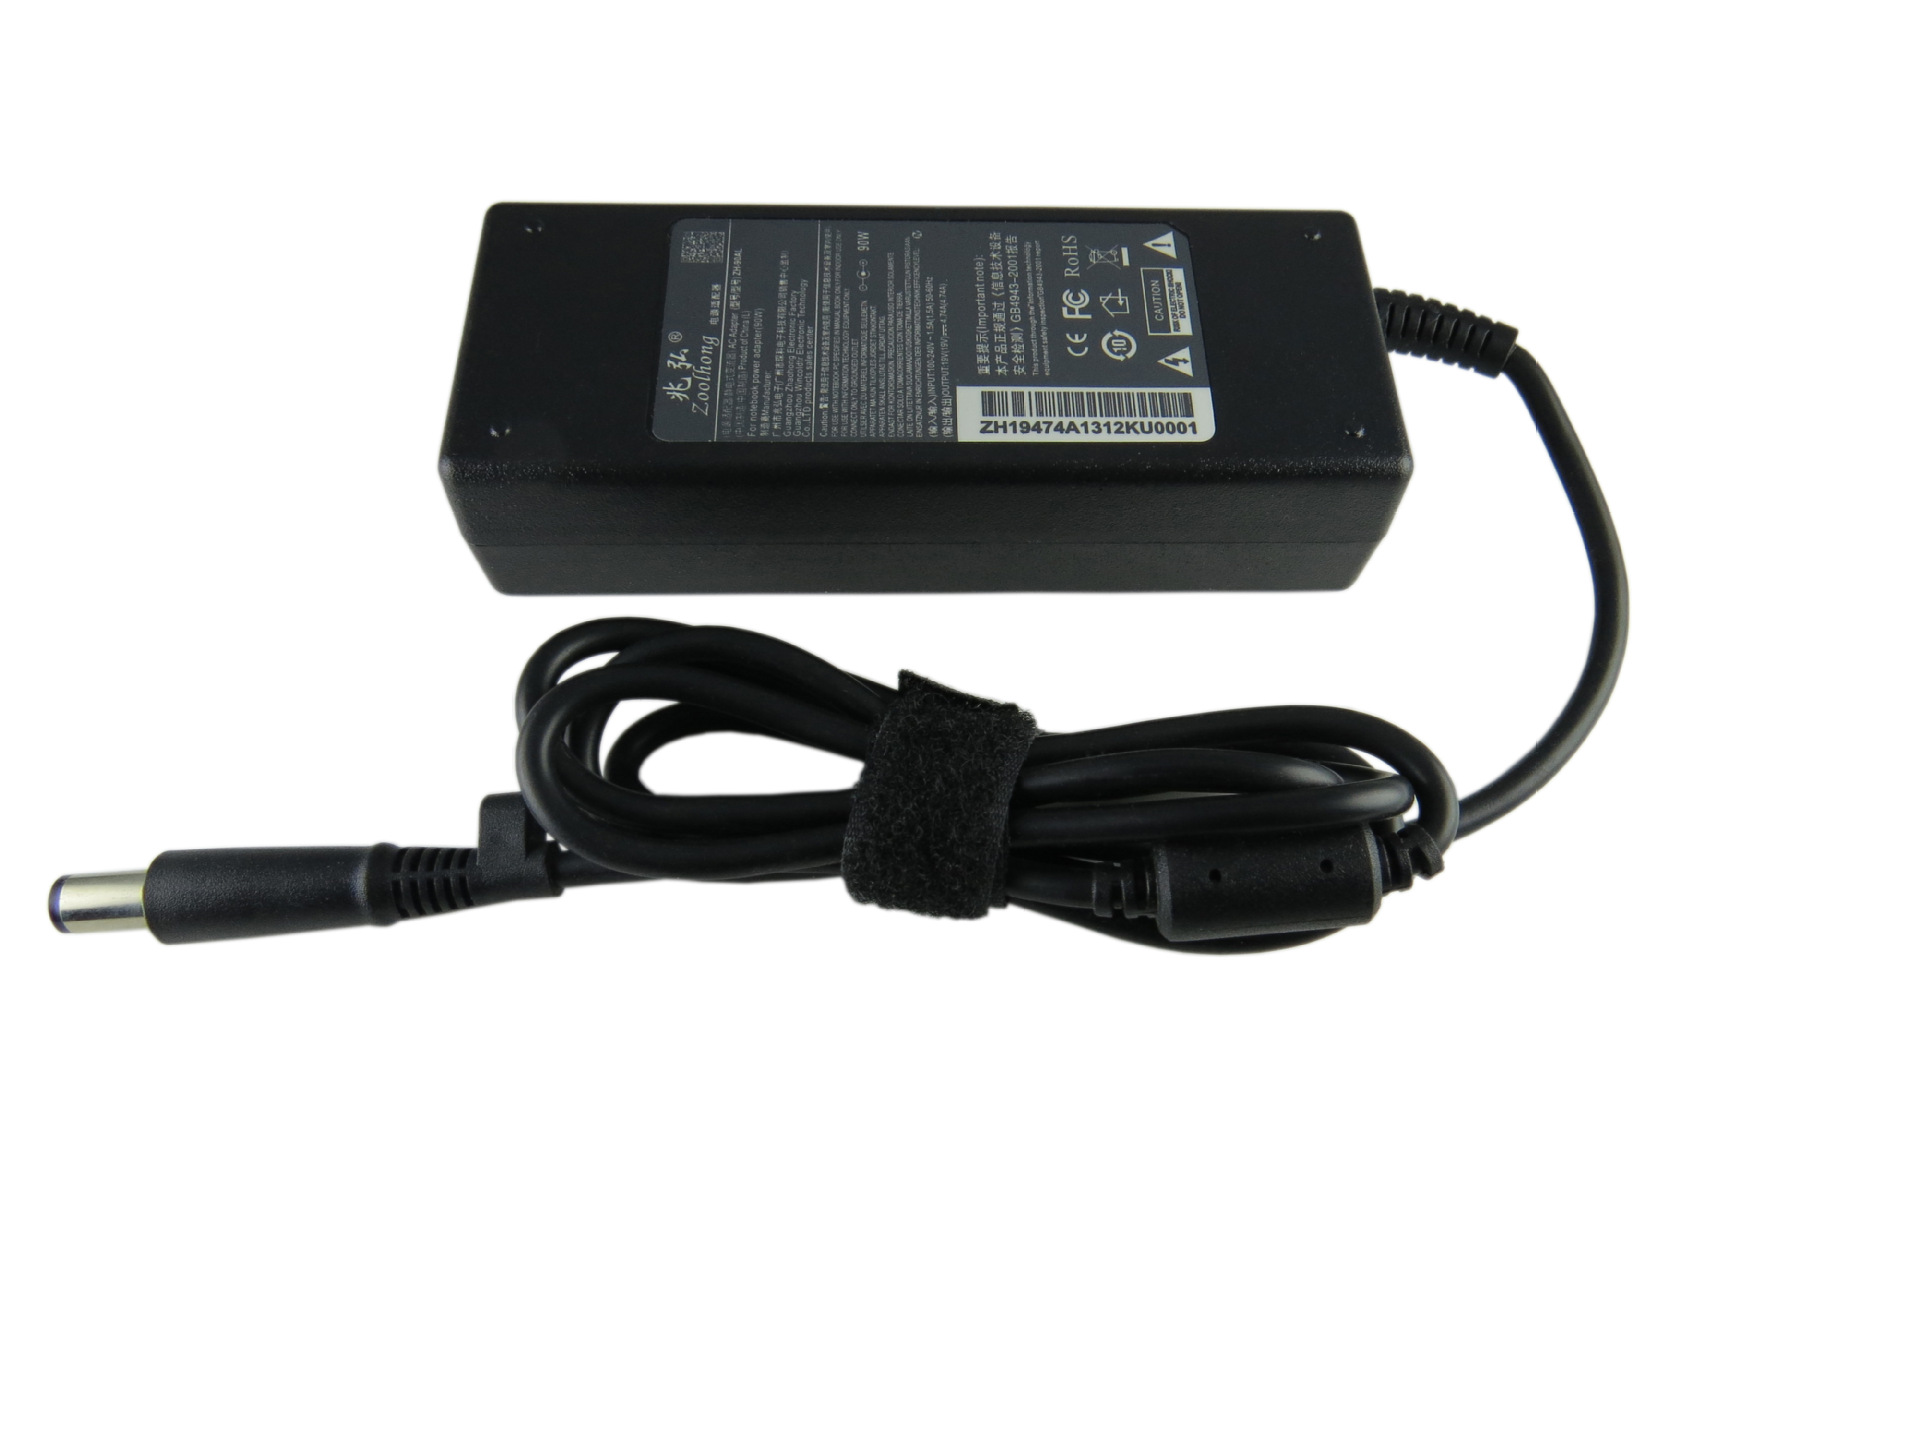 19V 4.74A 90W Ac Laptop Power Adapter Charger For Hp Nc6220 Nc6230 Nc6320 Nc6400 Nx6115 Nx6120 Nx6125 Pavilion Dv3 Dv4 Dv5 Dv6